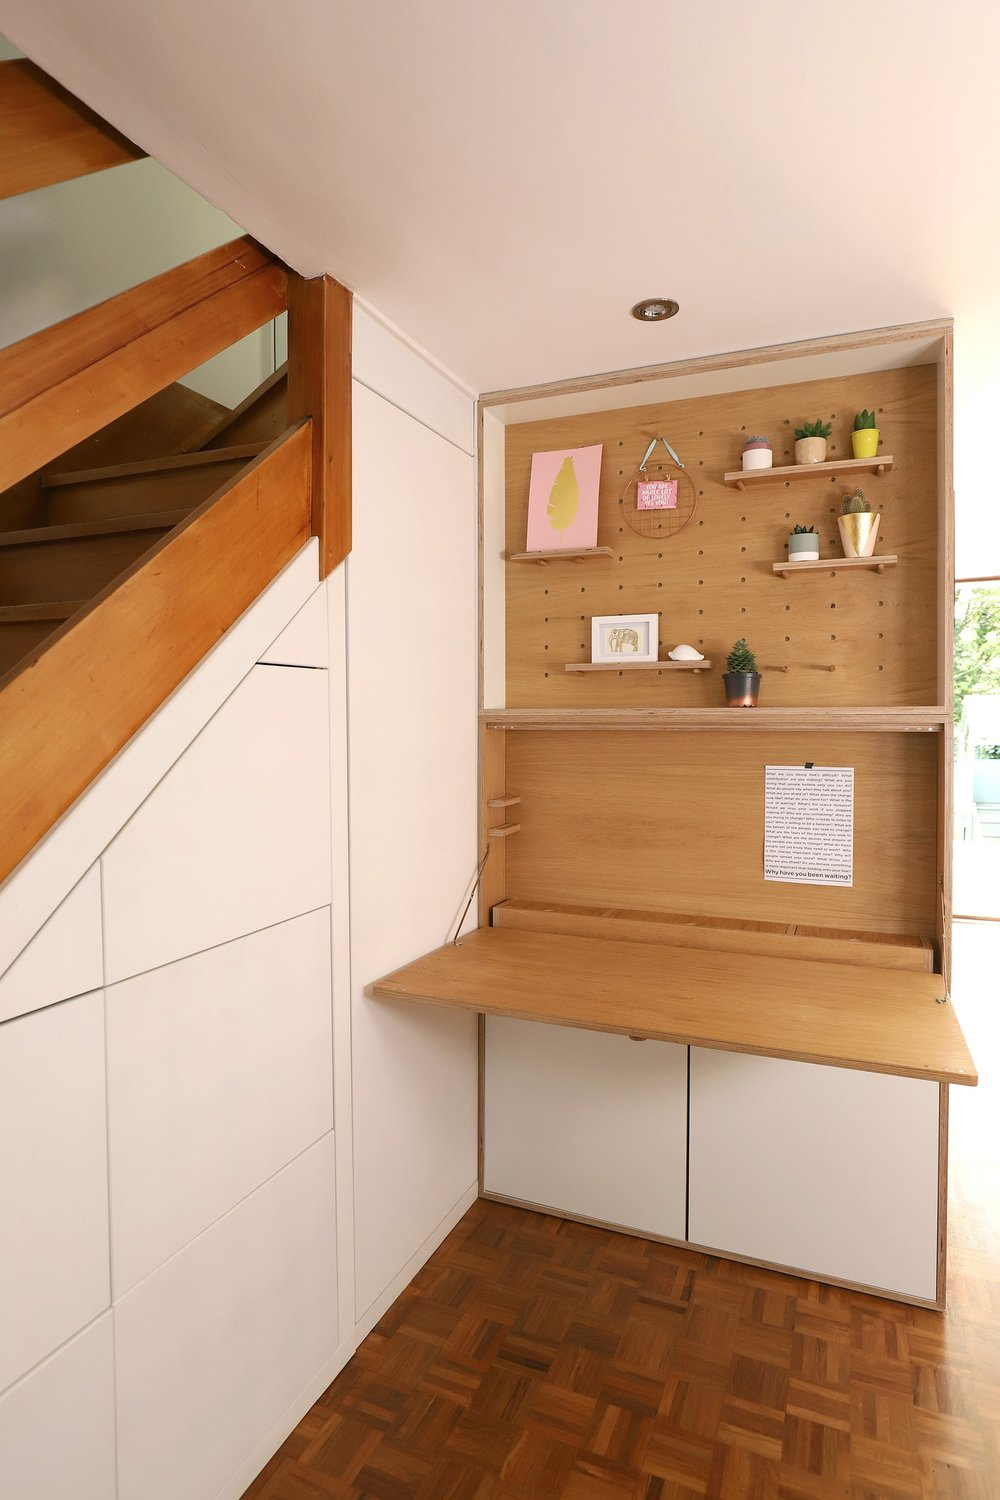 The folding desk when in use.